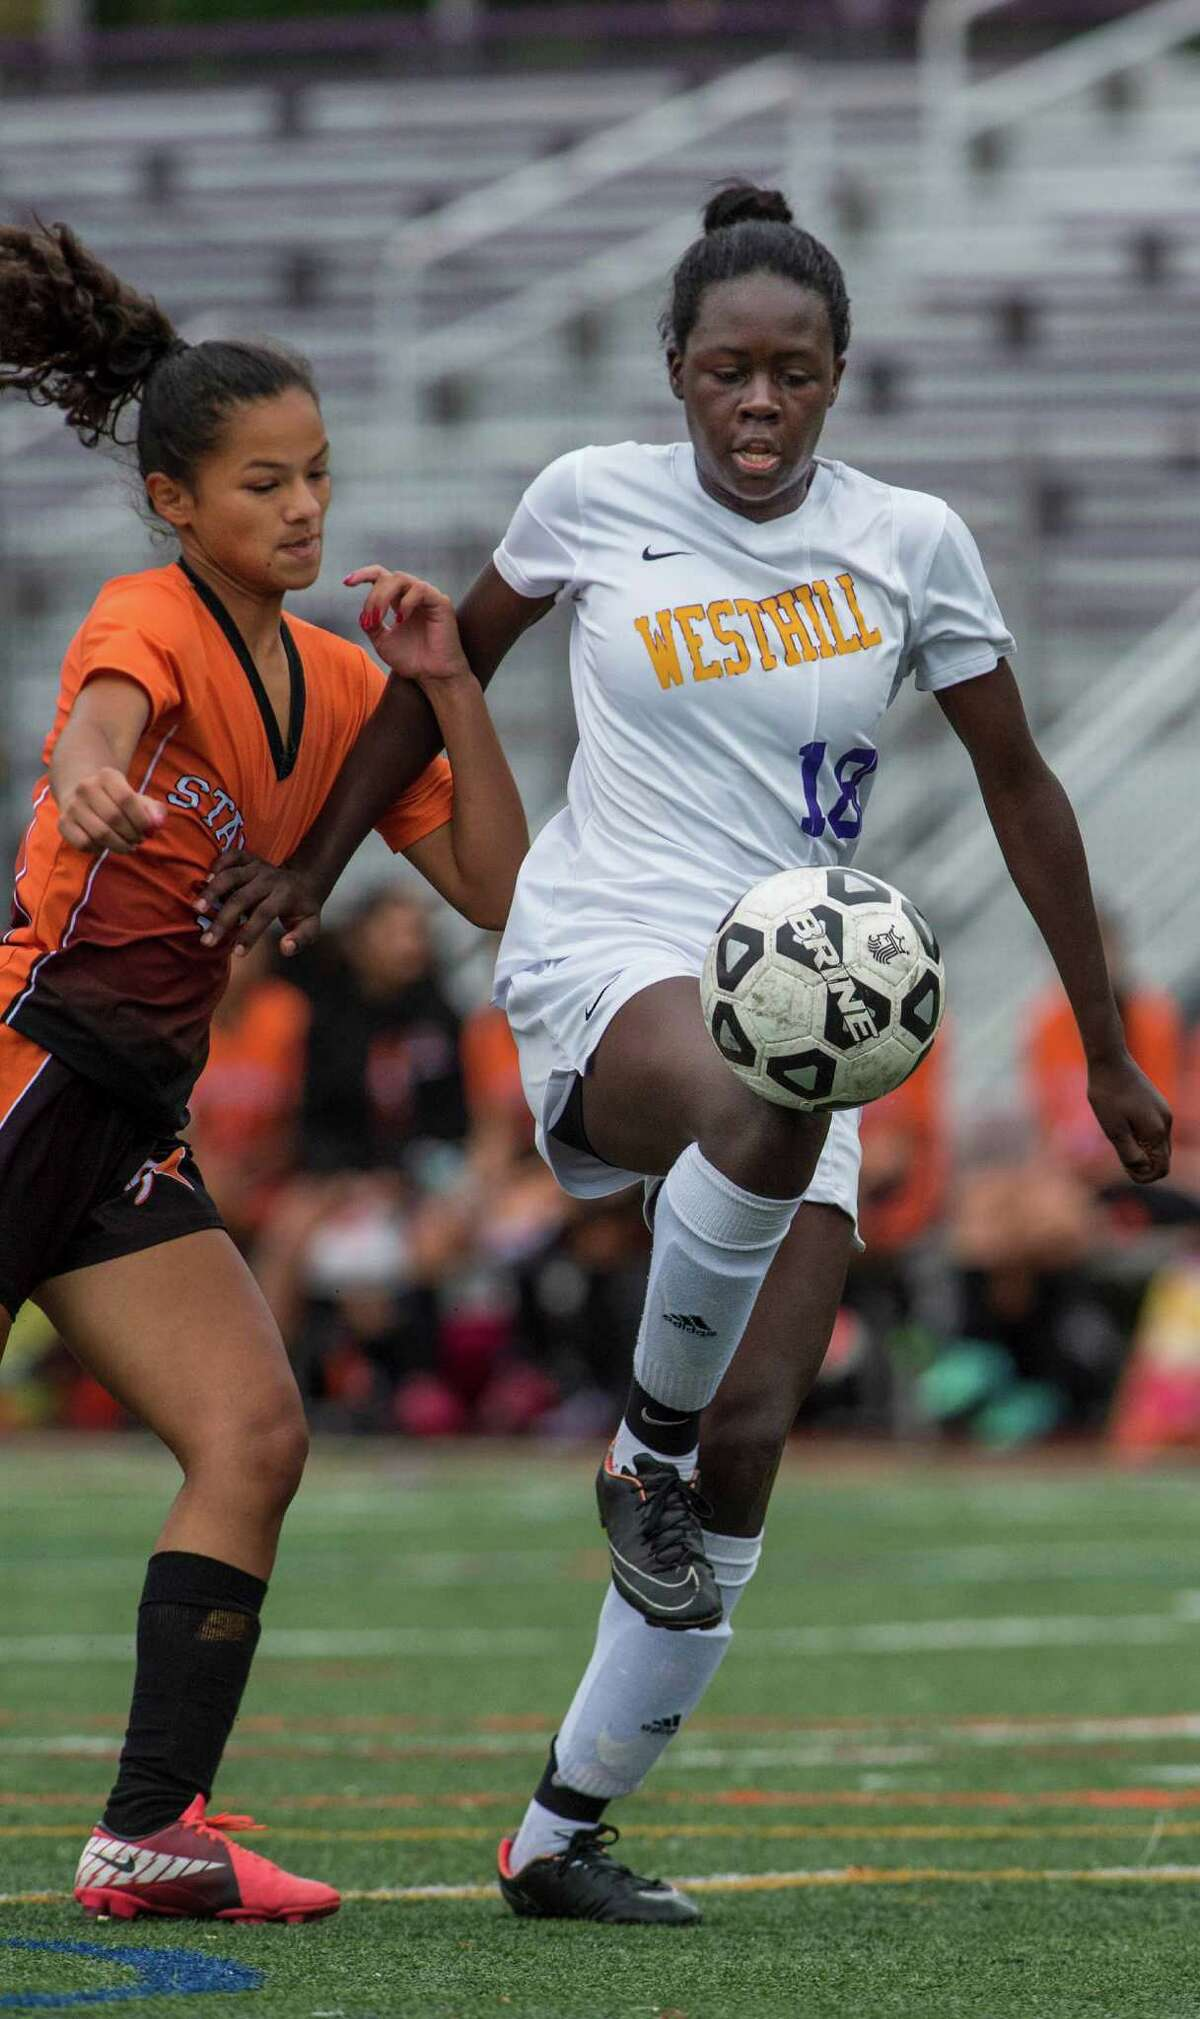 Westhill's Chelsea Domond, right, and Stamford's Estefanie Cabrera fight for the ball during a girls soccer game played at Westhill High School in Stamford on Saturday. Domond scored two goals to help Westhill capture the city championship, 3-0.